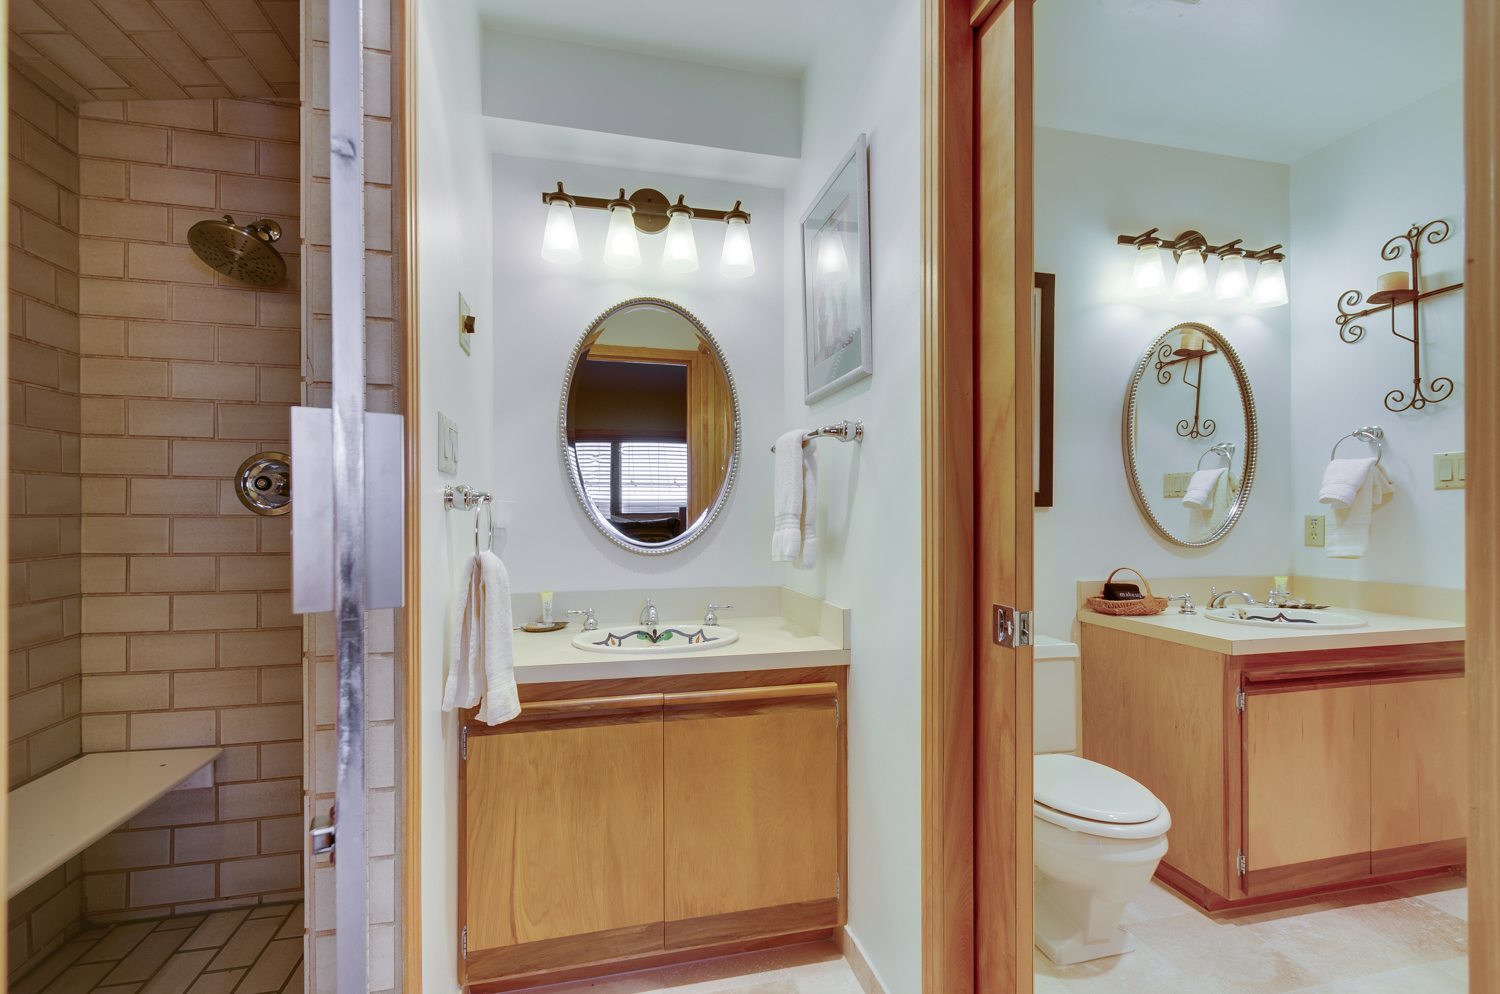 Full view of 2nd bathroom